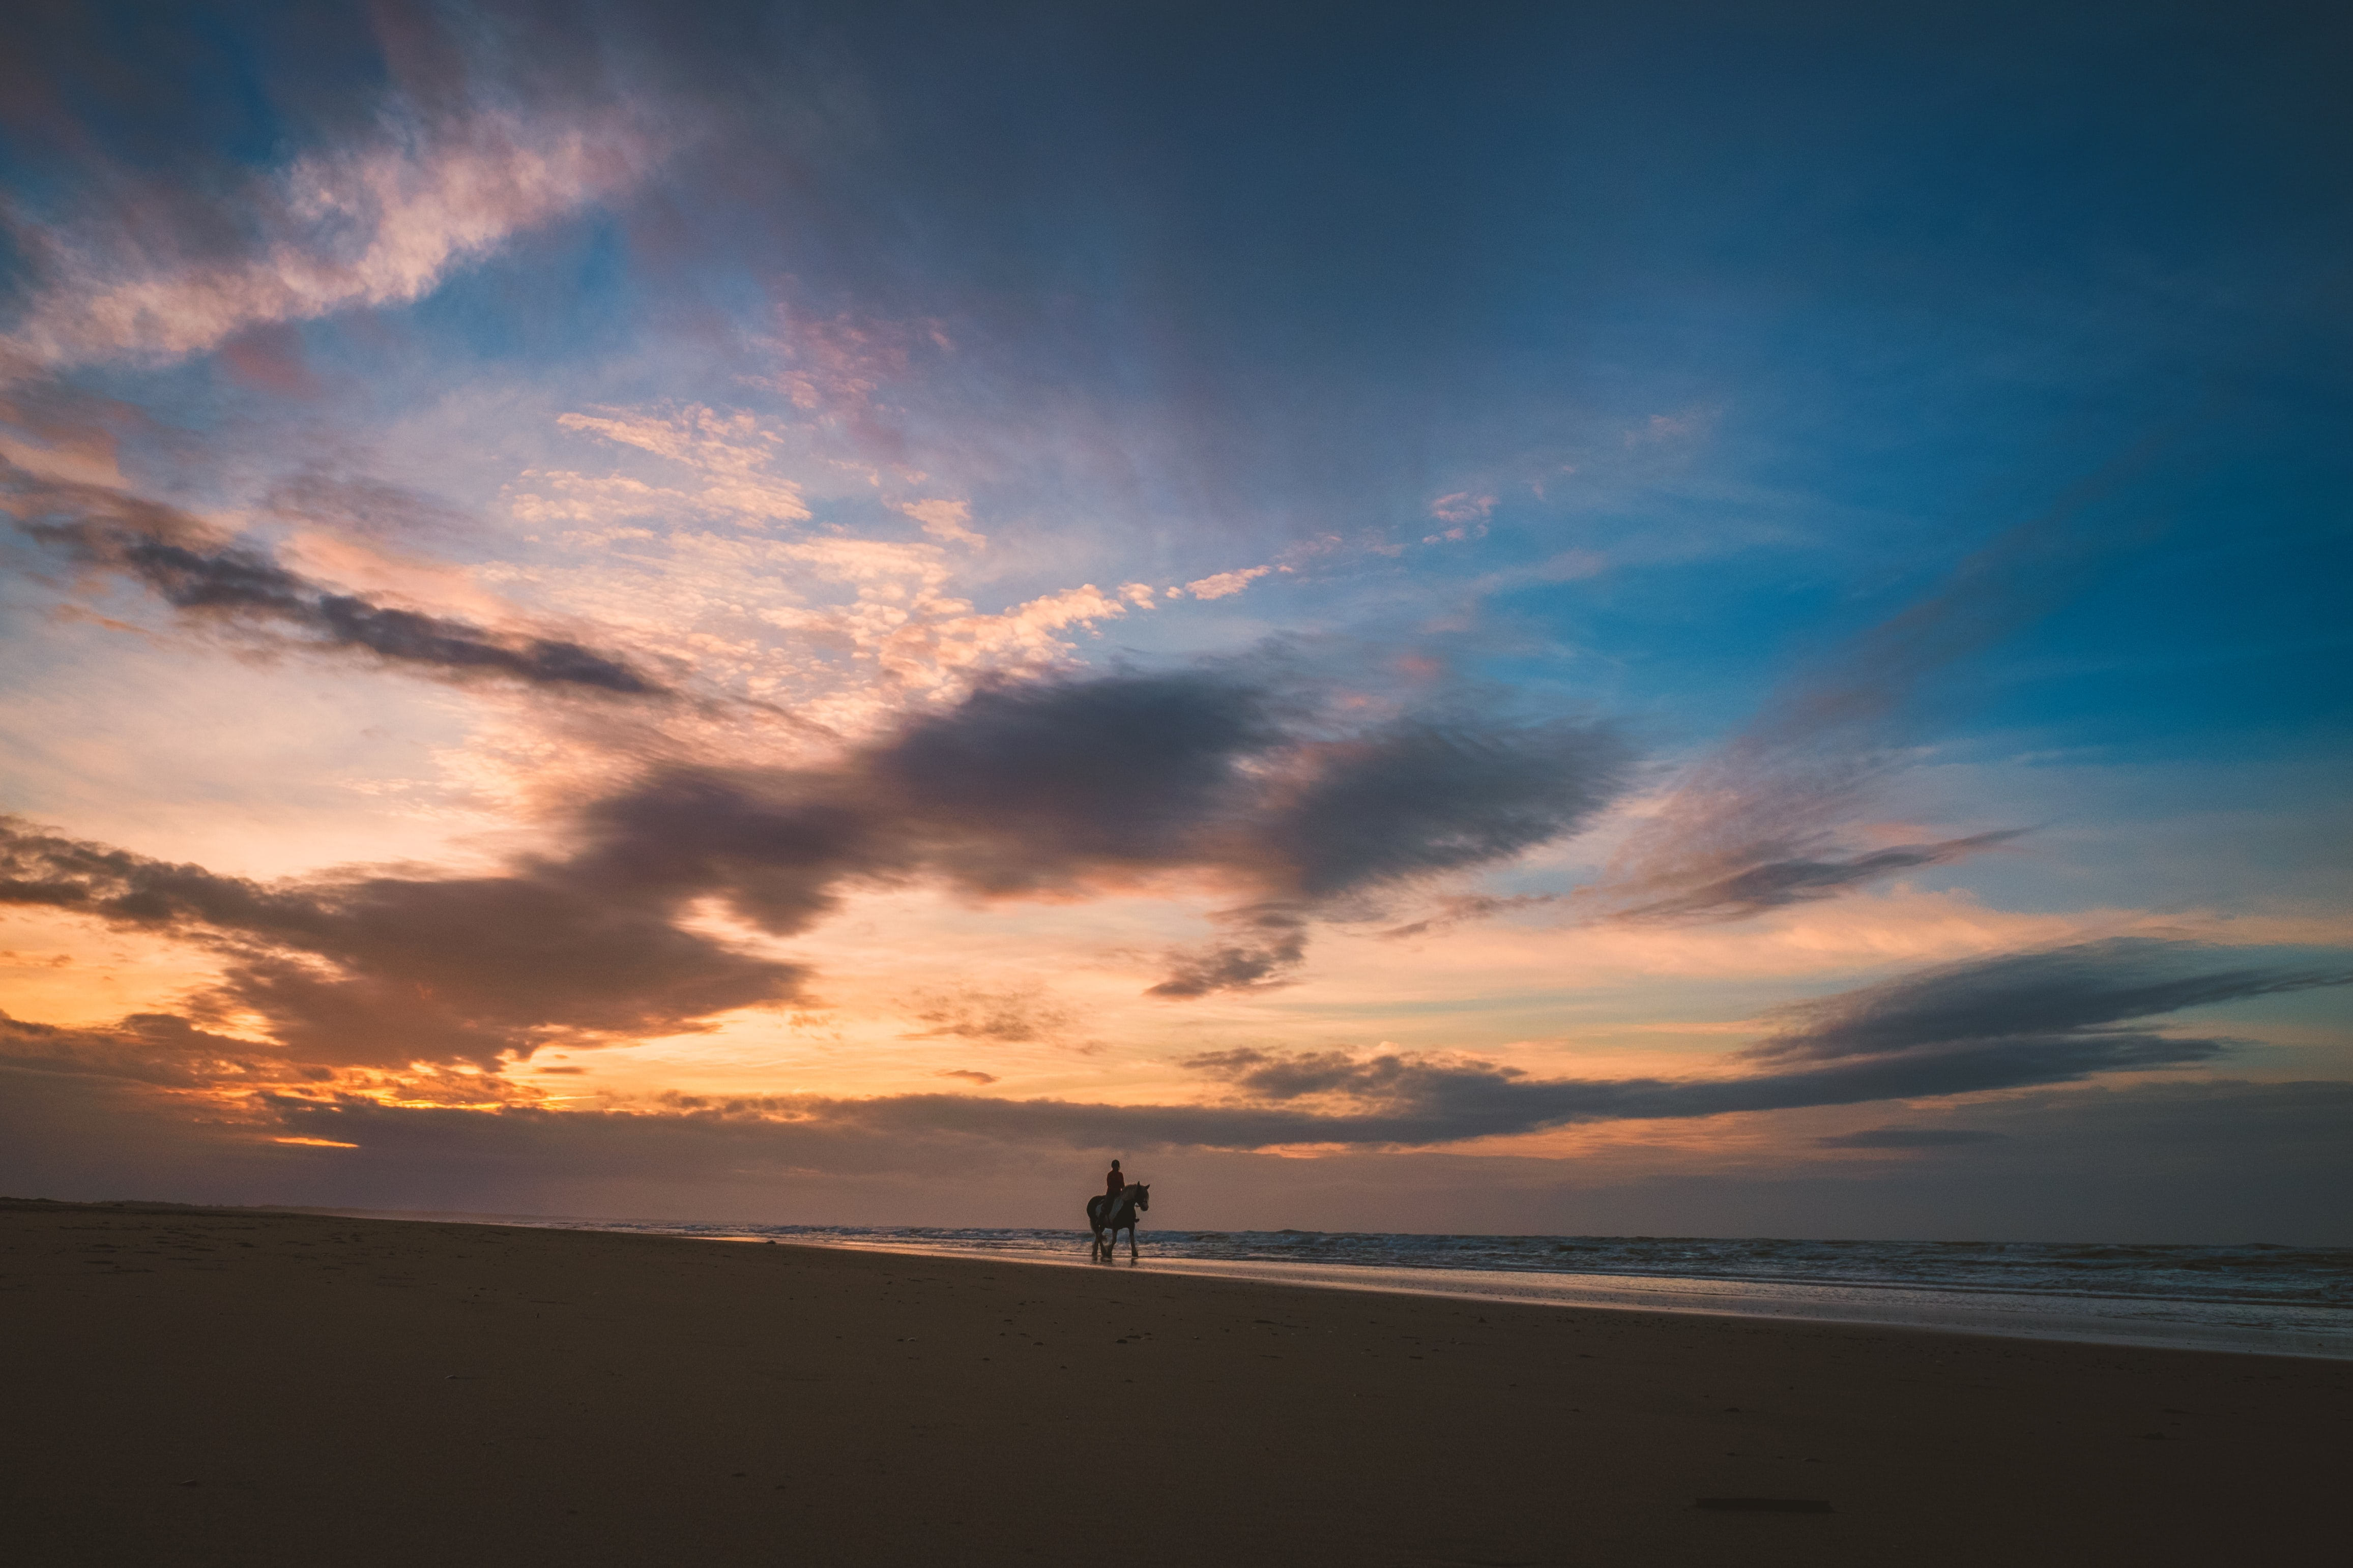 person riding horse at seashore near body of water under cloudy sky